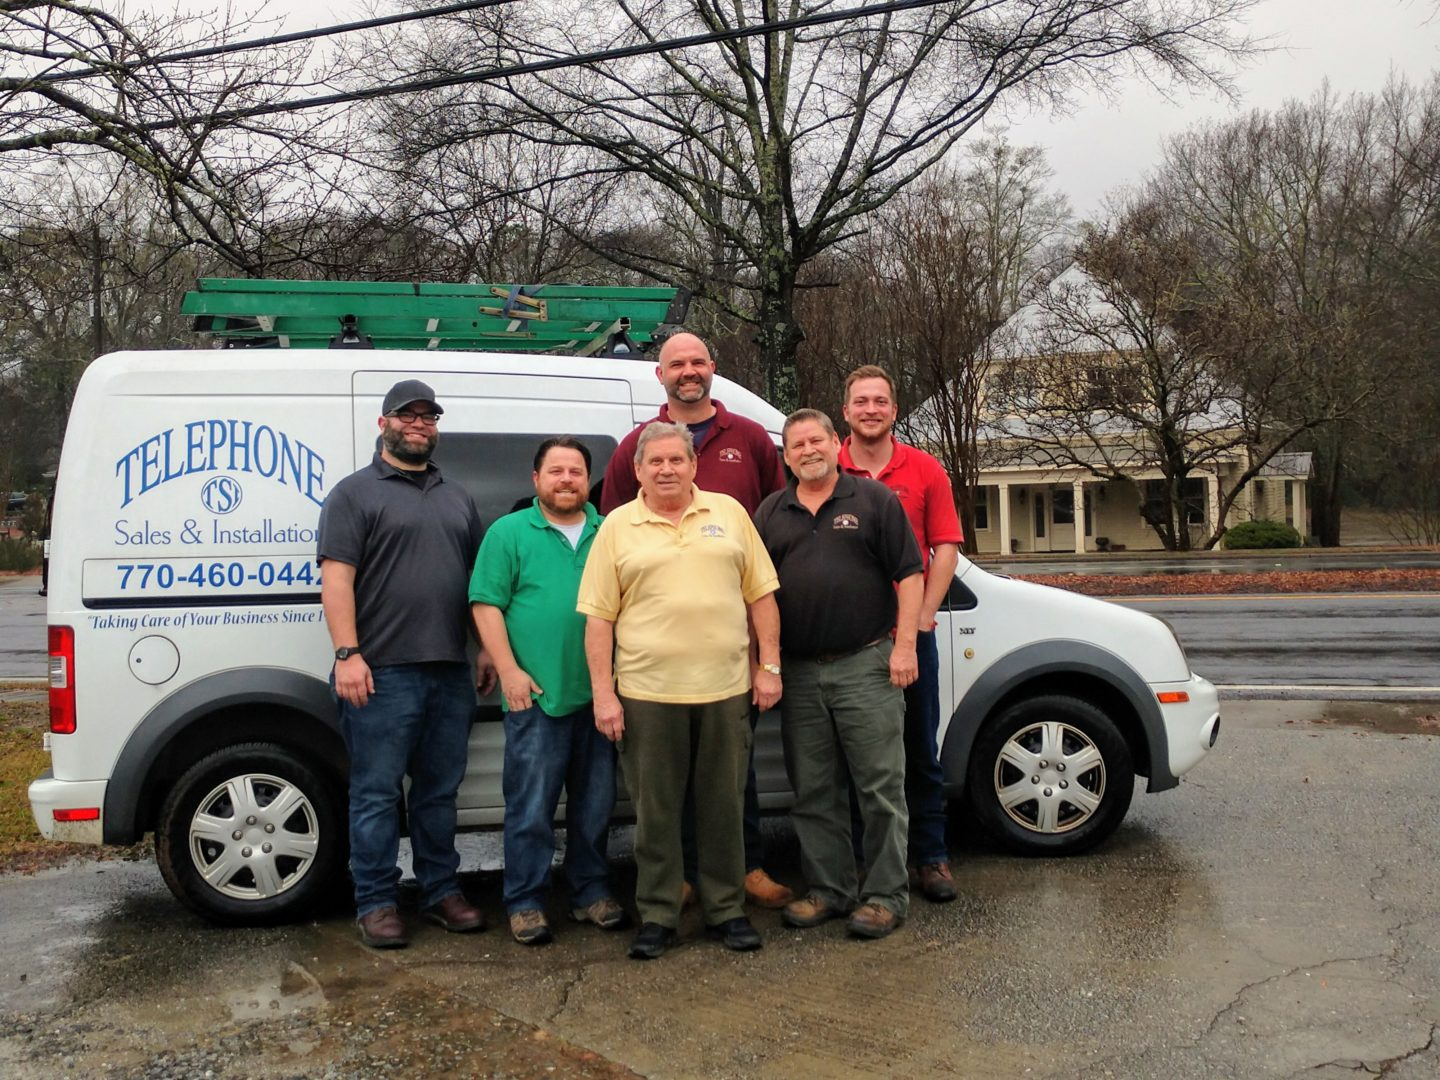 Your Telephone Sales & Installation Team